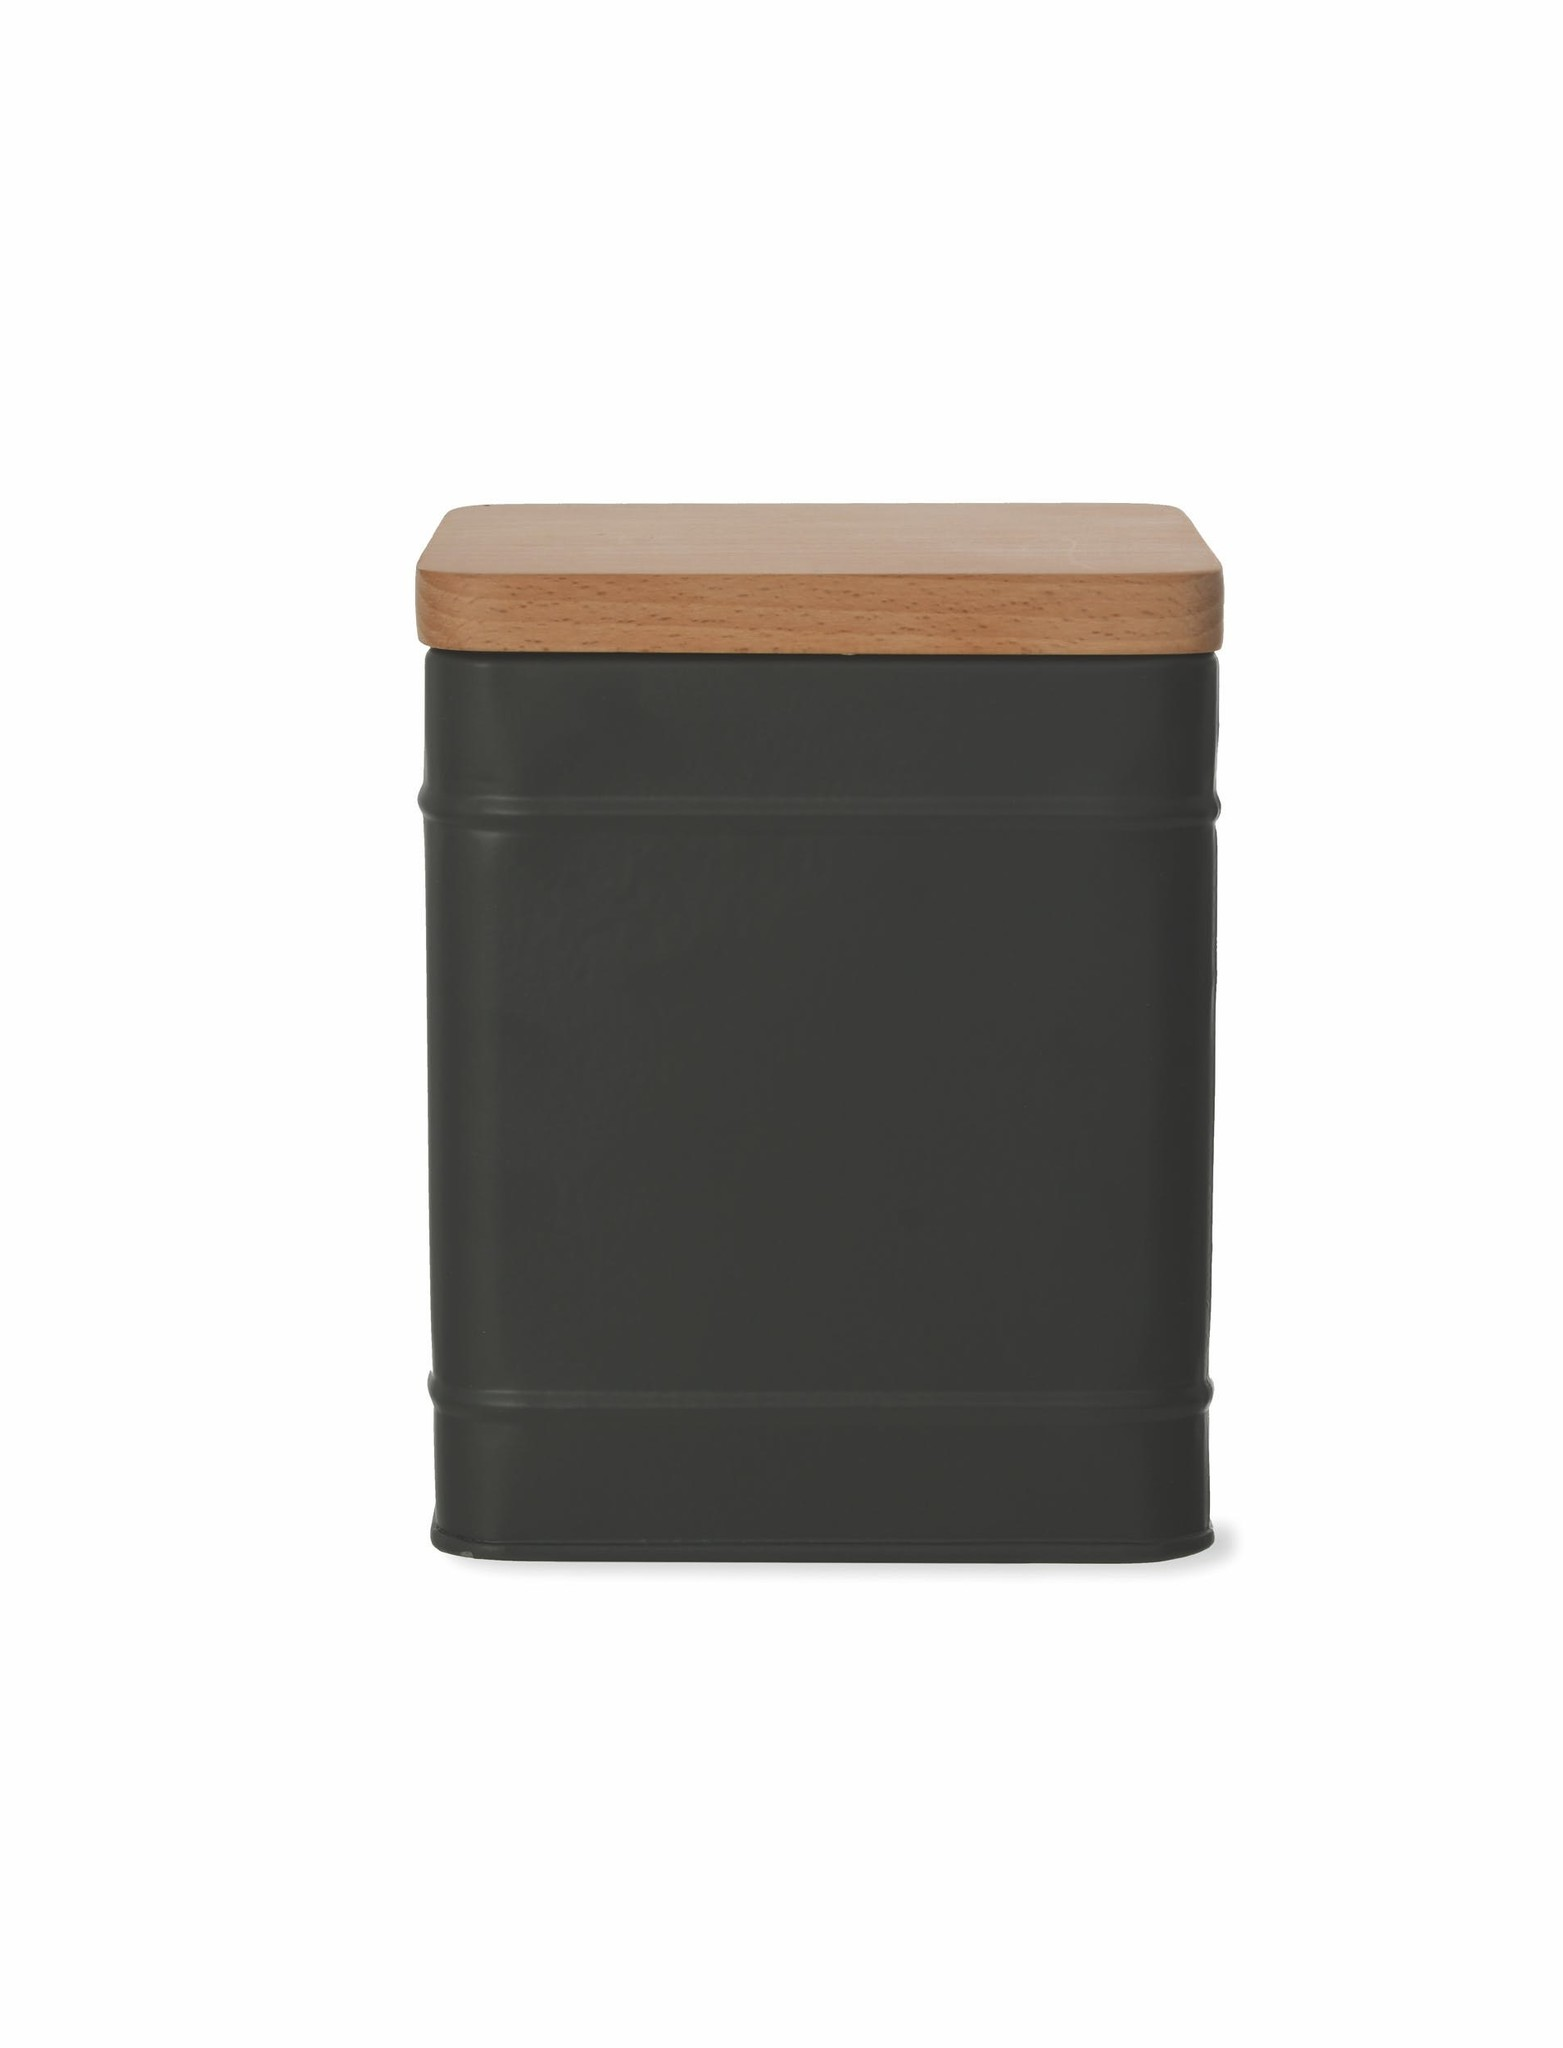 Garden Trading Borough Canister, Large- Charcoal